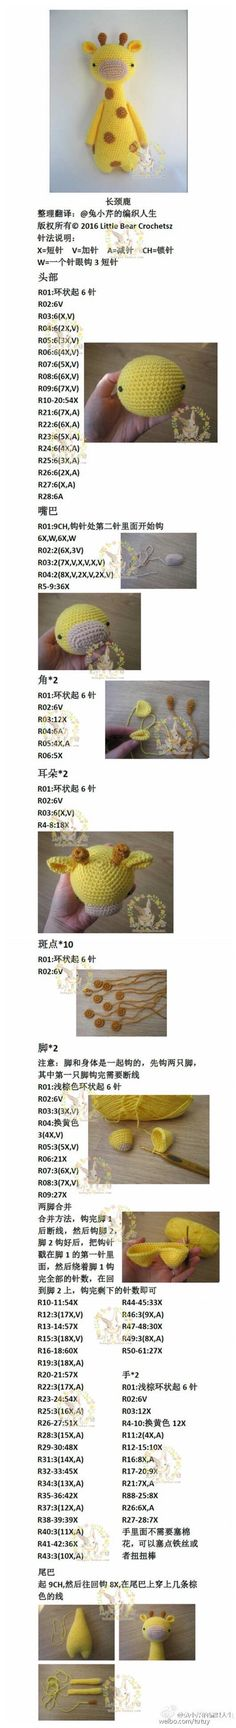 know it's all in Japanese but an experienced crocheter might be able to work it out from the pictures and numbers. Crochet Doll Pattern, Crochet Chart, Crochet Patterns Amigurumi, Amigurumi Doll, Crochet Dolls, Kawaii Crochet, Cute Crochet, Crochet Baby, Crochet Animals